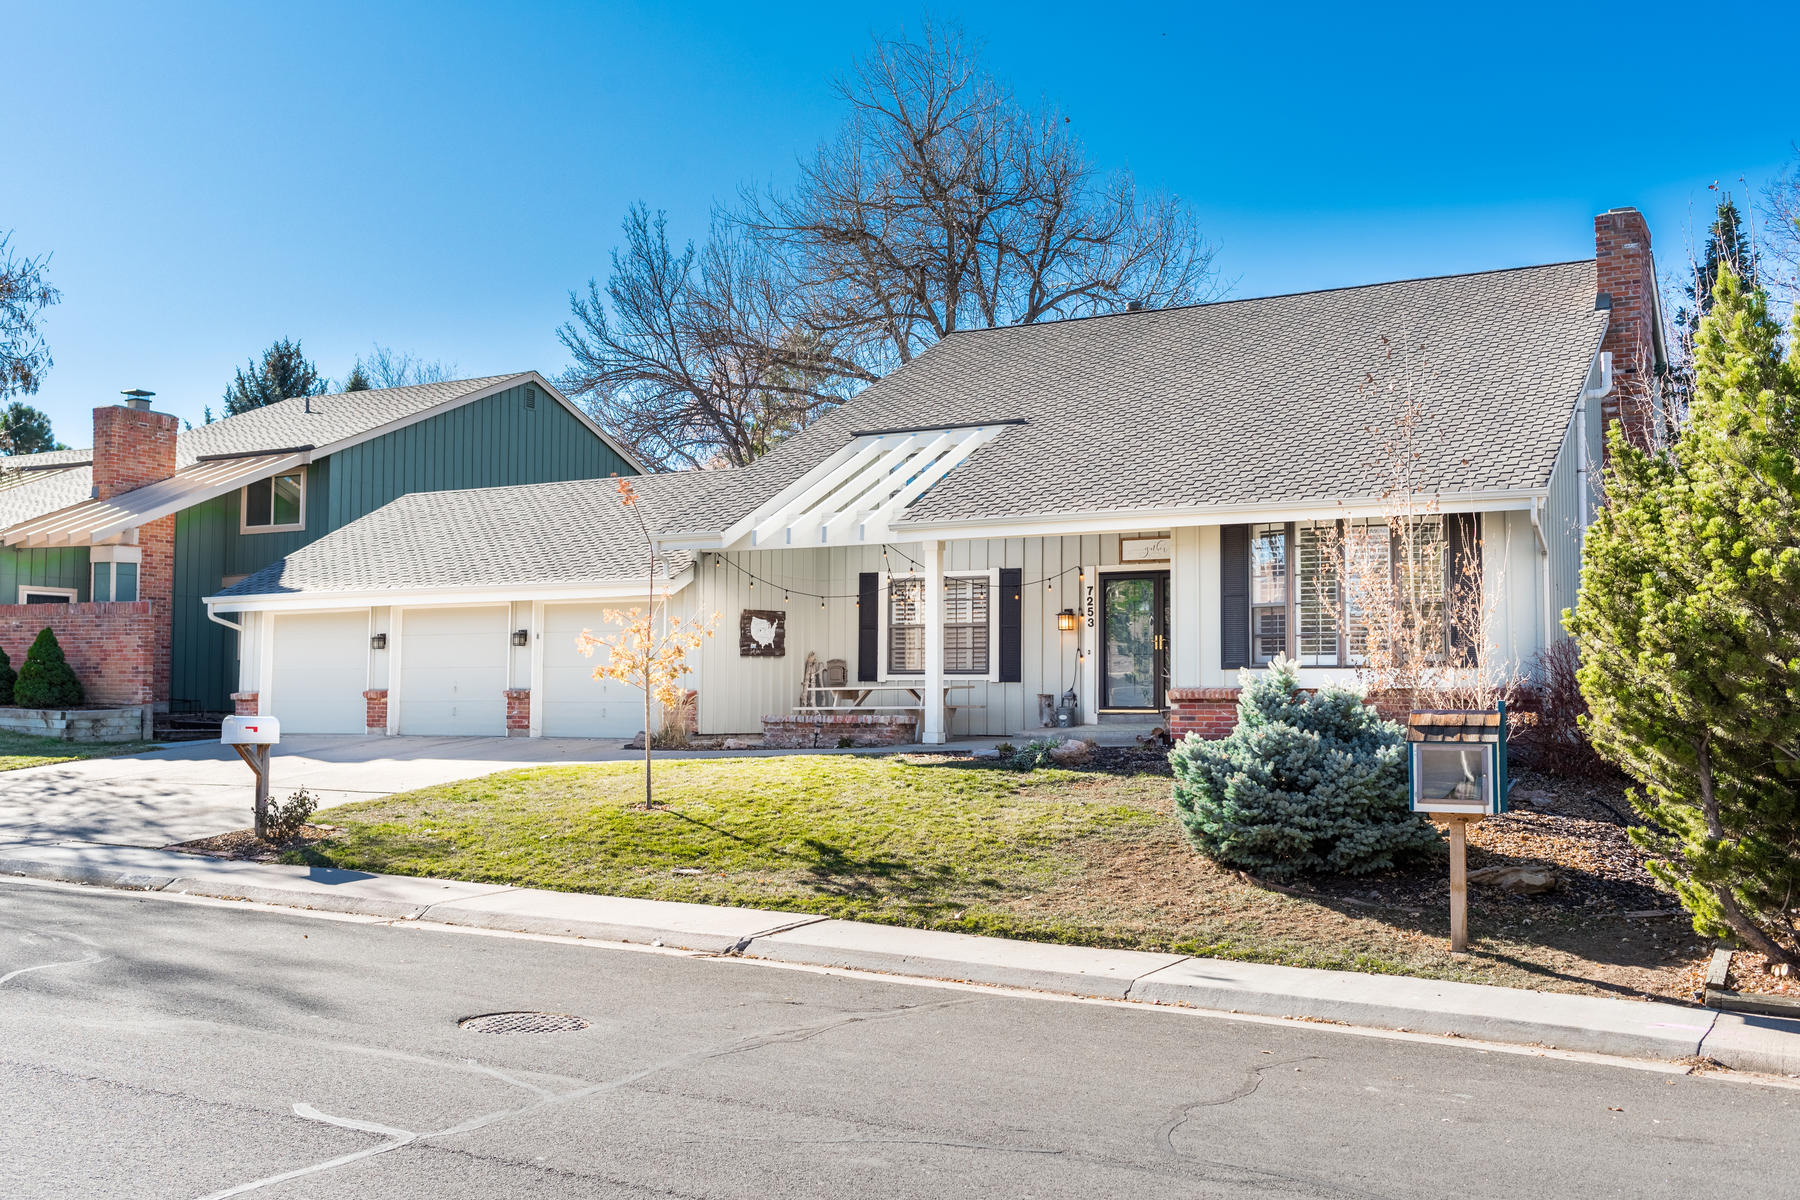 Single Family Home for Active at Extremely Sought-After Writer Sausalito Model 7253 S Garfield St Centennial, Colorado 80122 United States